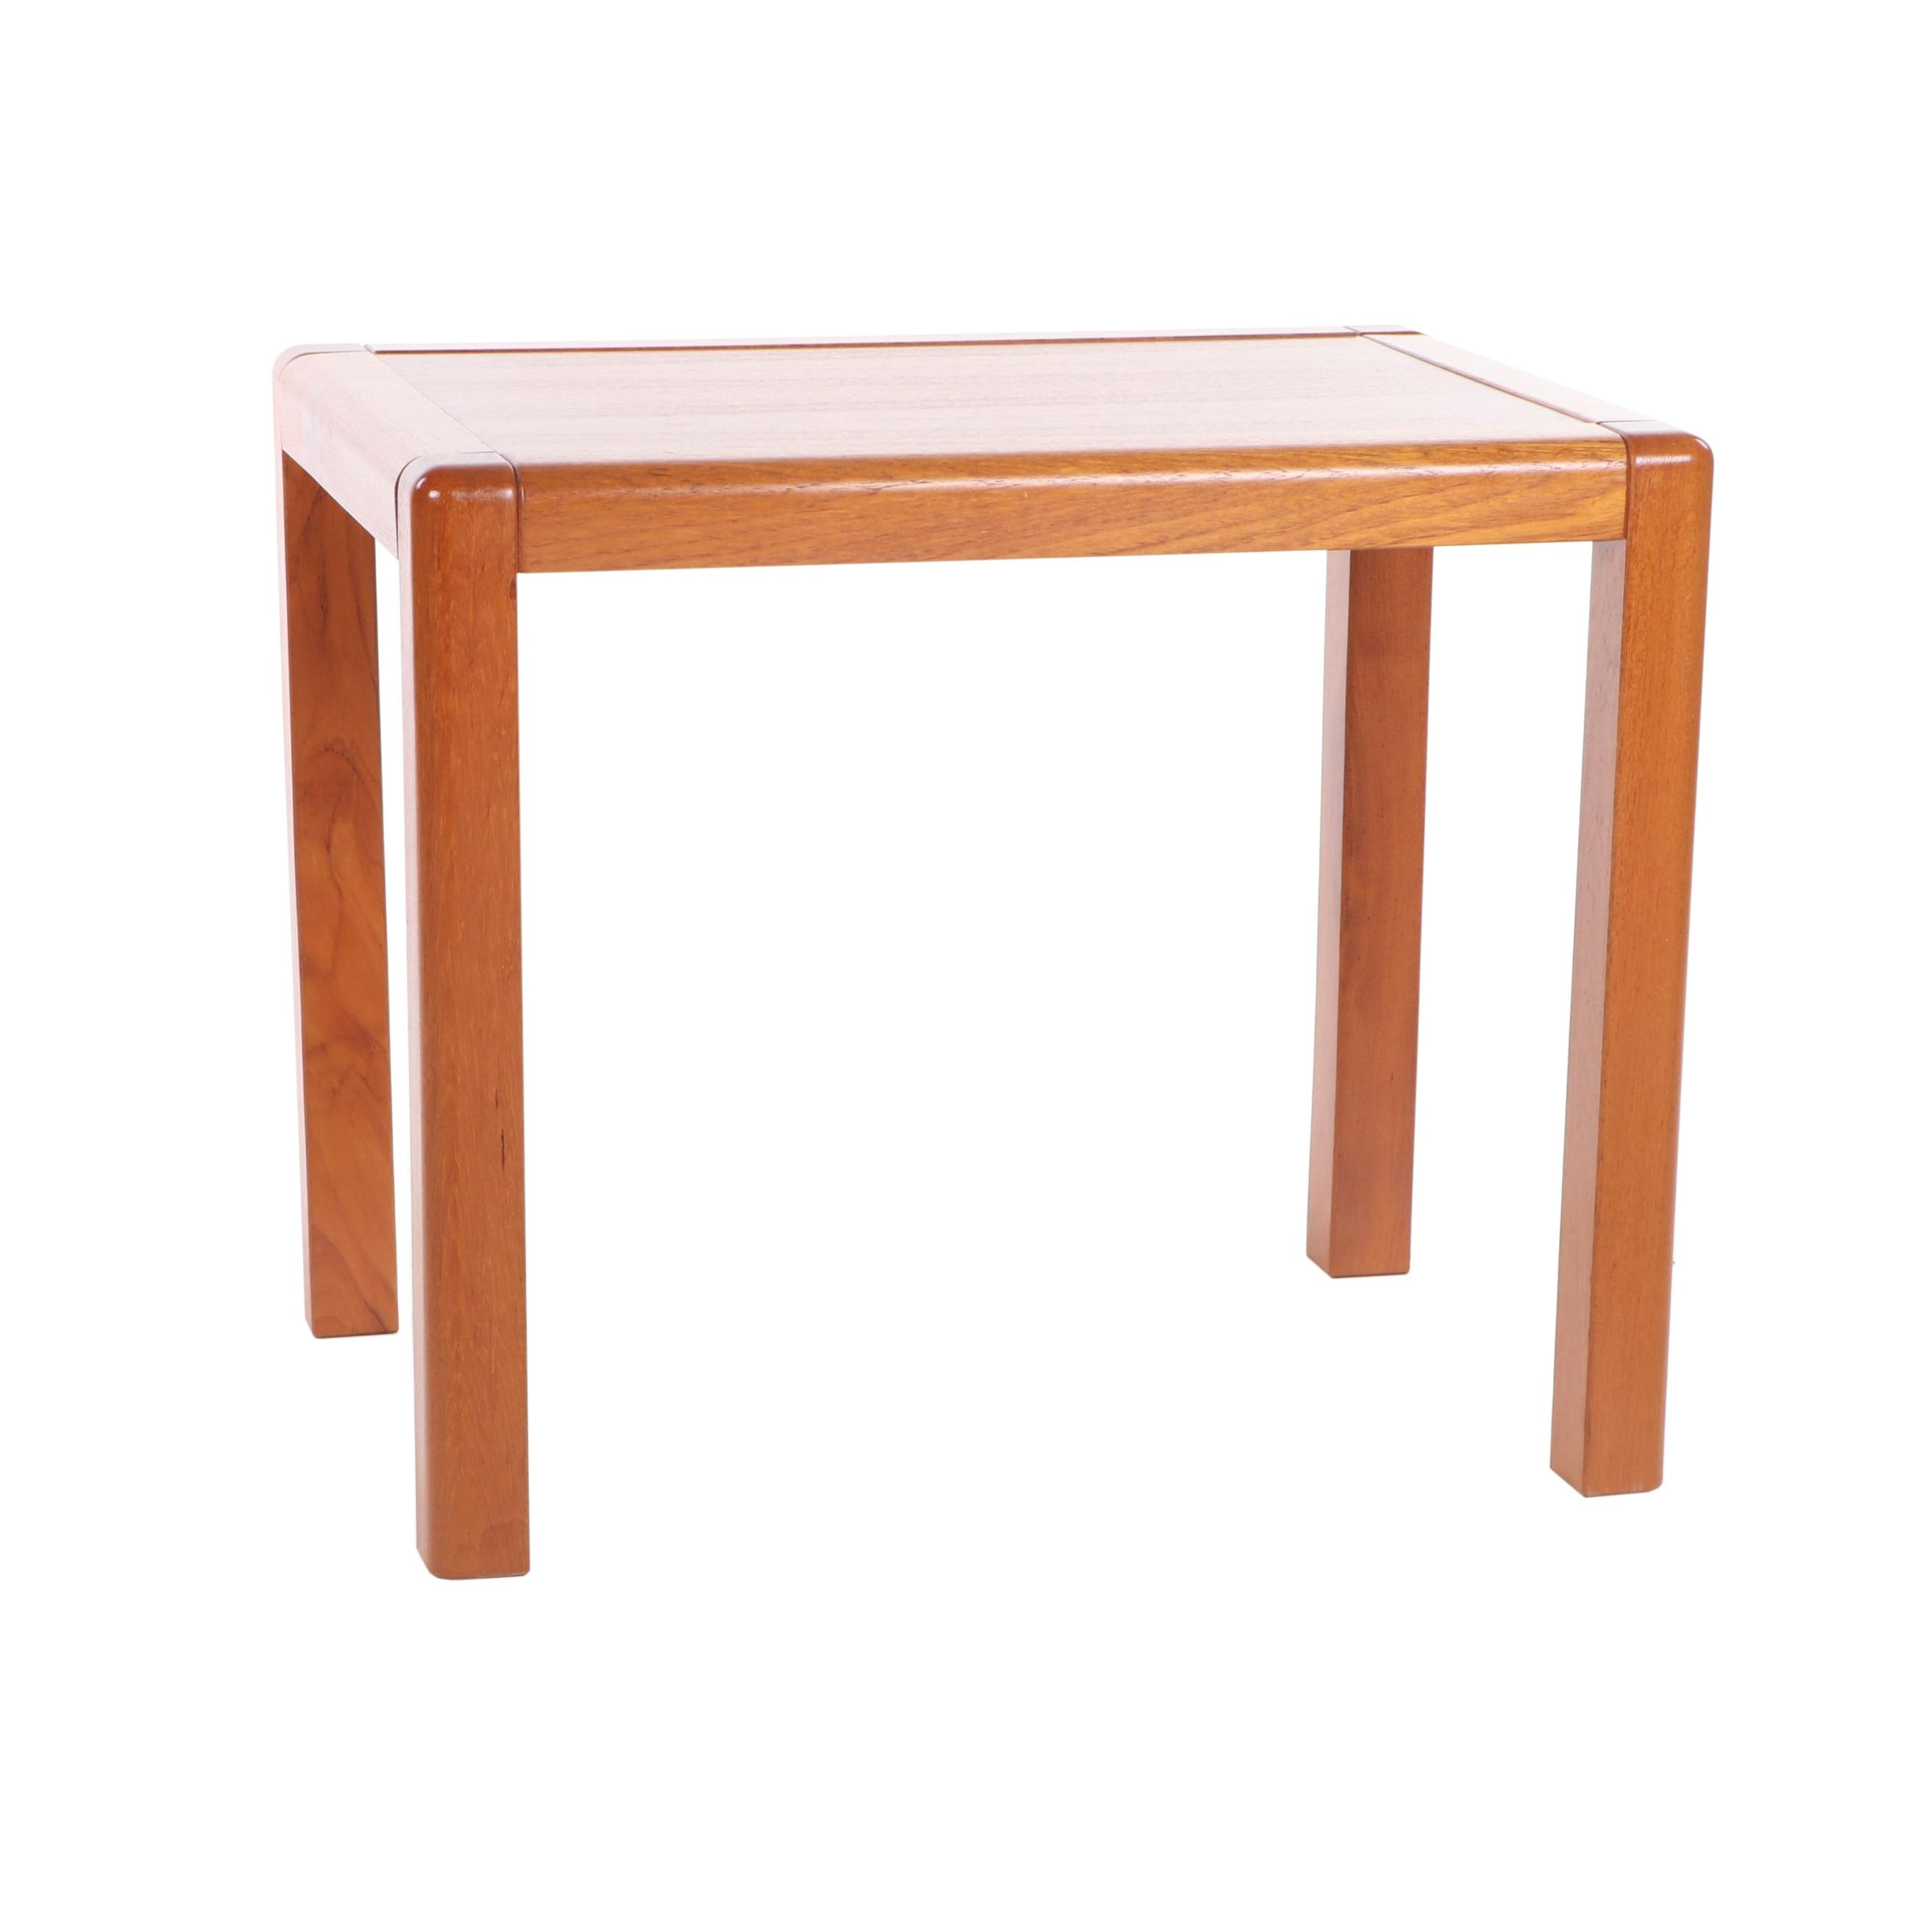 Danish Modern Teak End Table, Mid to Late 20th Century